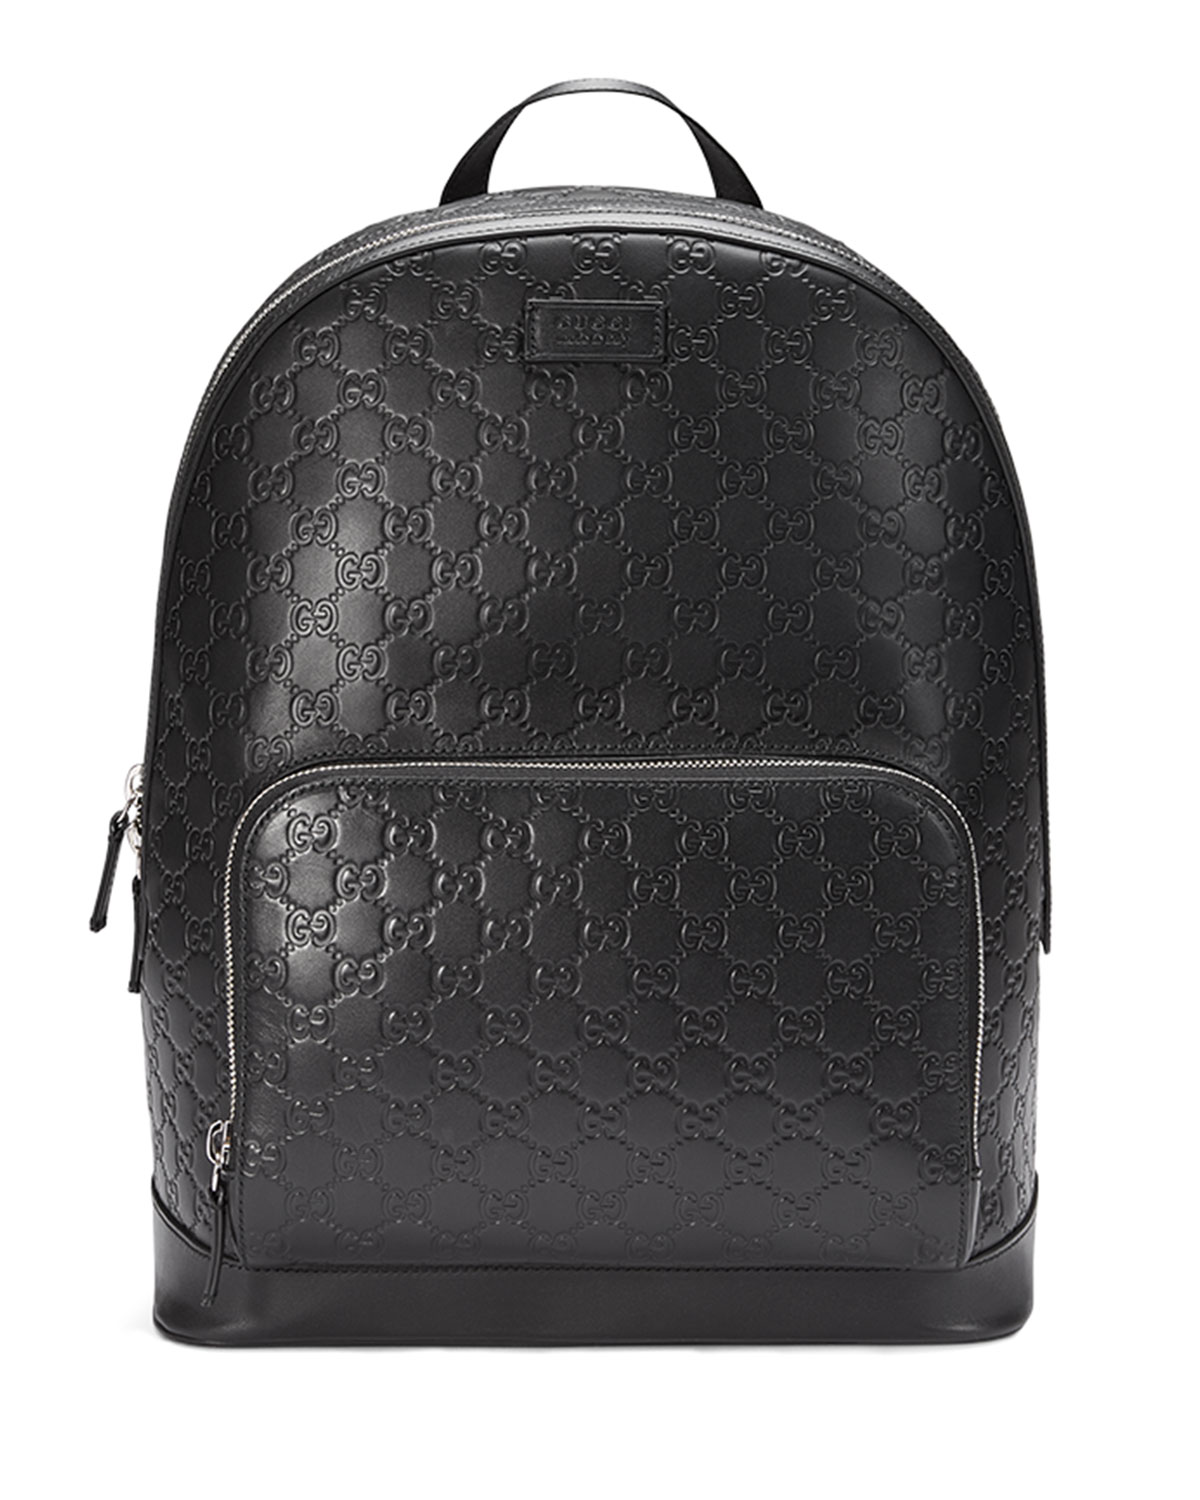 895ada91262 Gucci Signature Leather Backpack